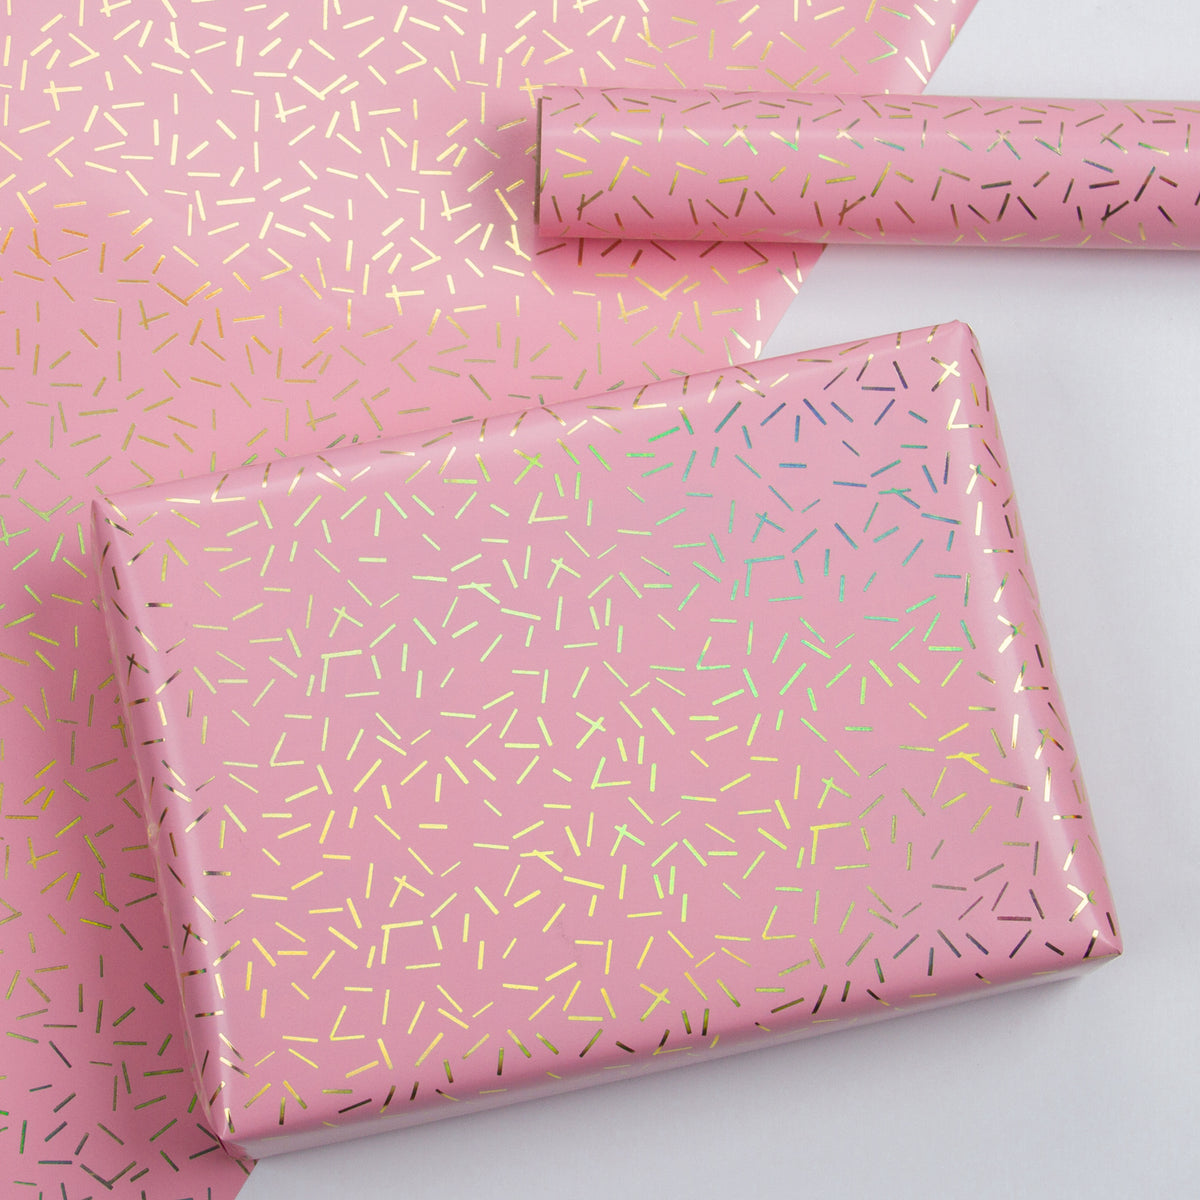 Wrapaholic-Pink-with-Gold Foil-Design- Gift-Wrapping-Paper-Roll-5